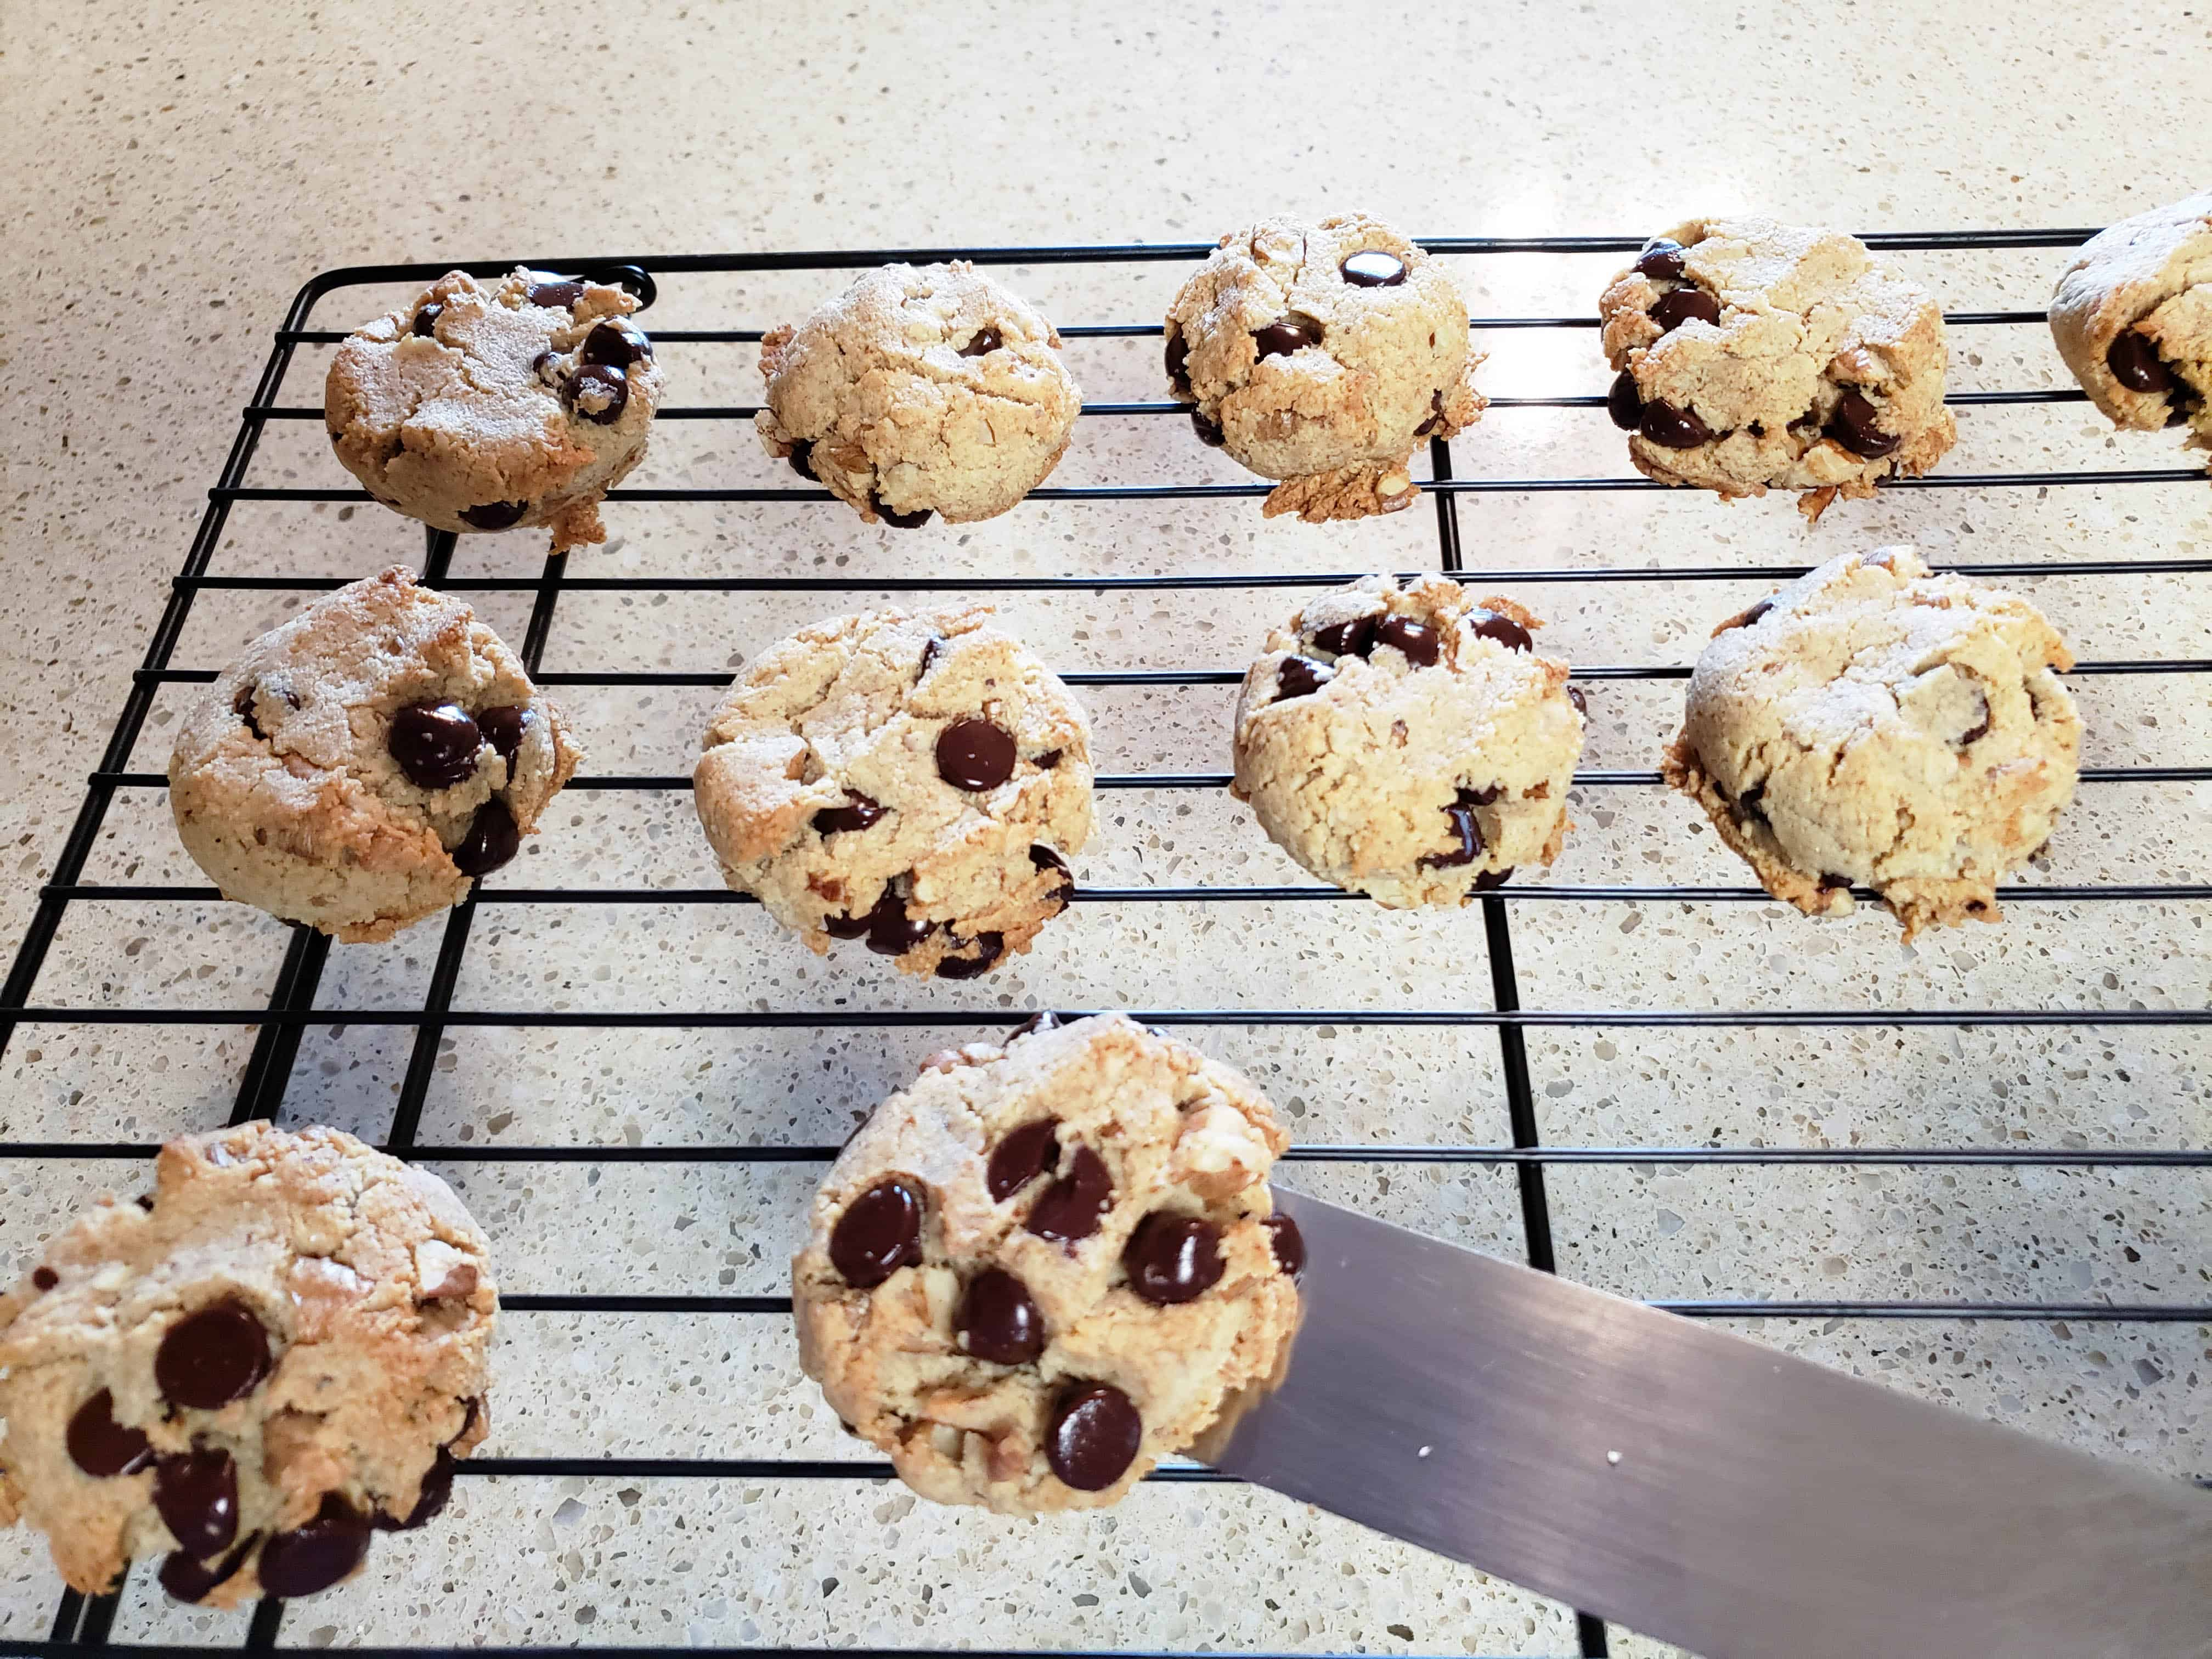 Keto Chocolate Chip cookies on the cooling rack